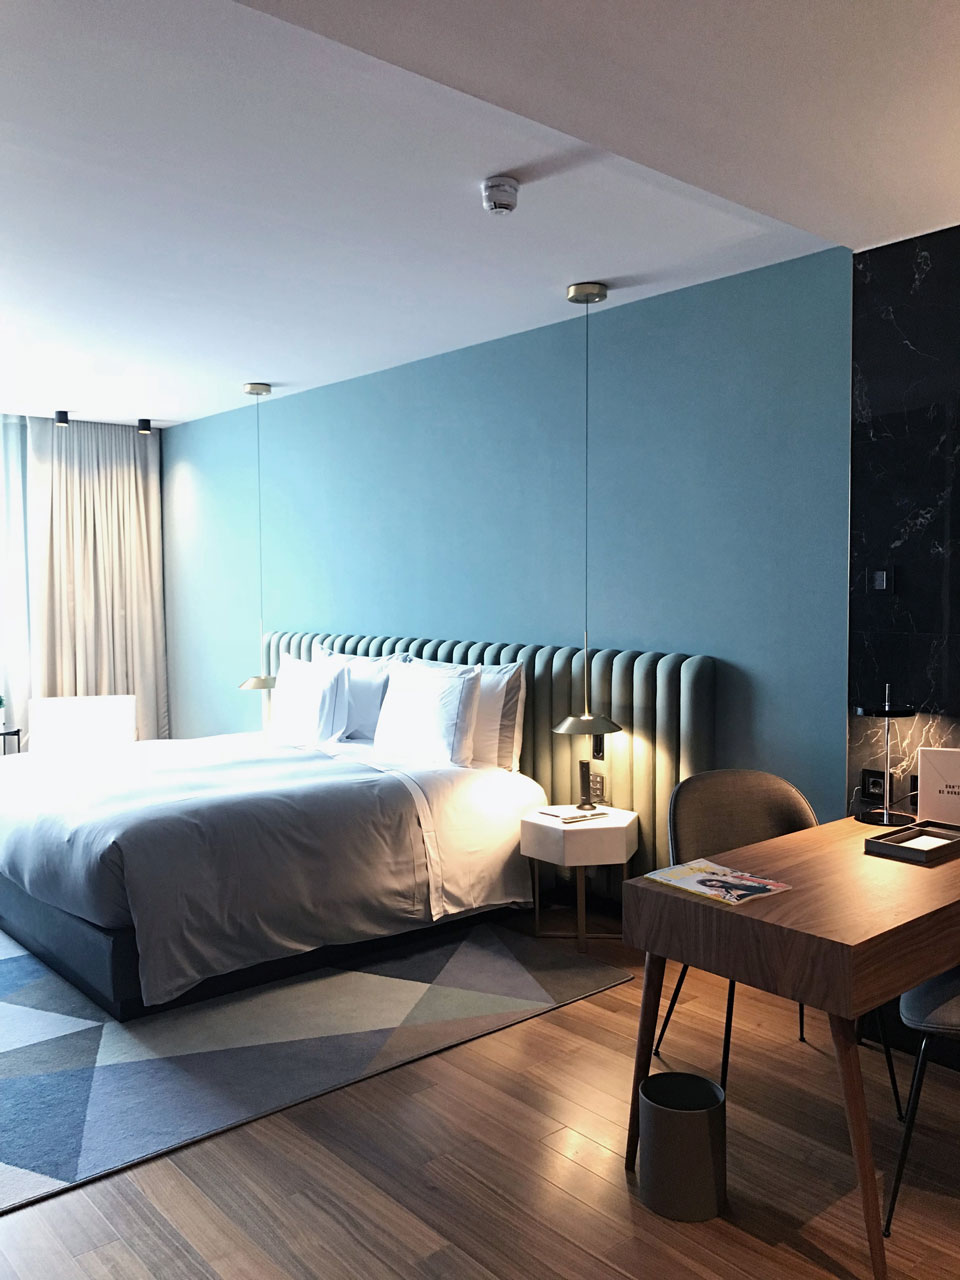 Vibia - Stories -Hotel bedroom lighting - Sofia Hotel - Mayfair 2